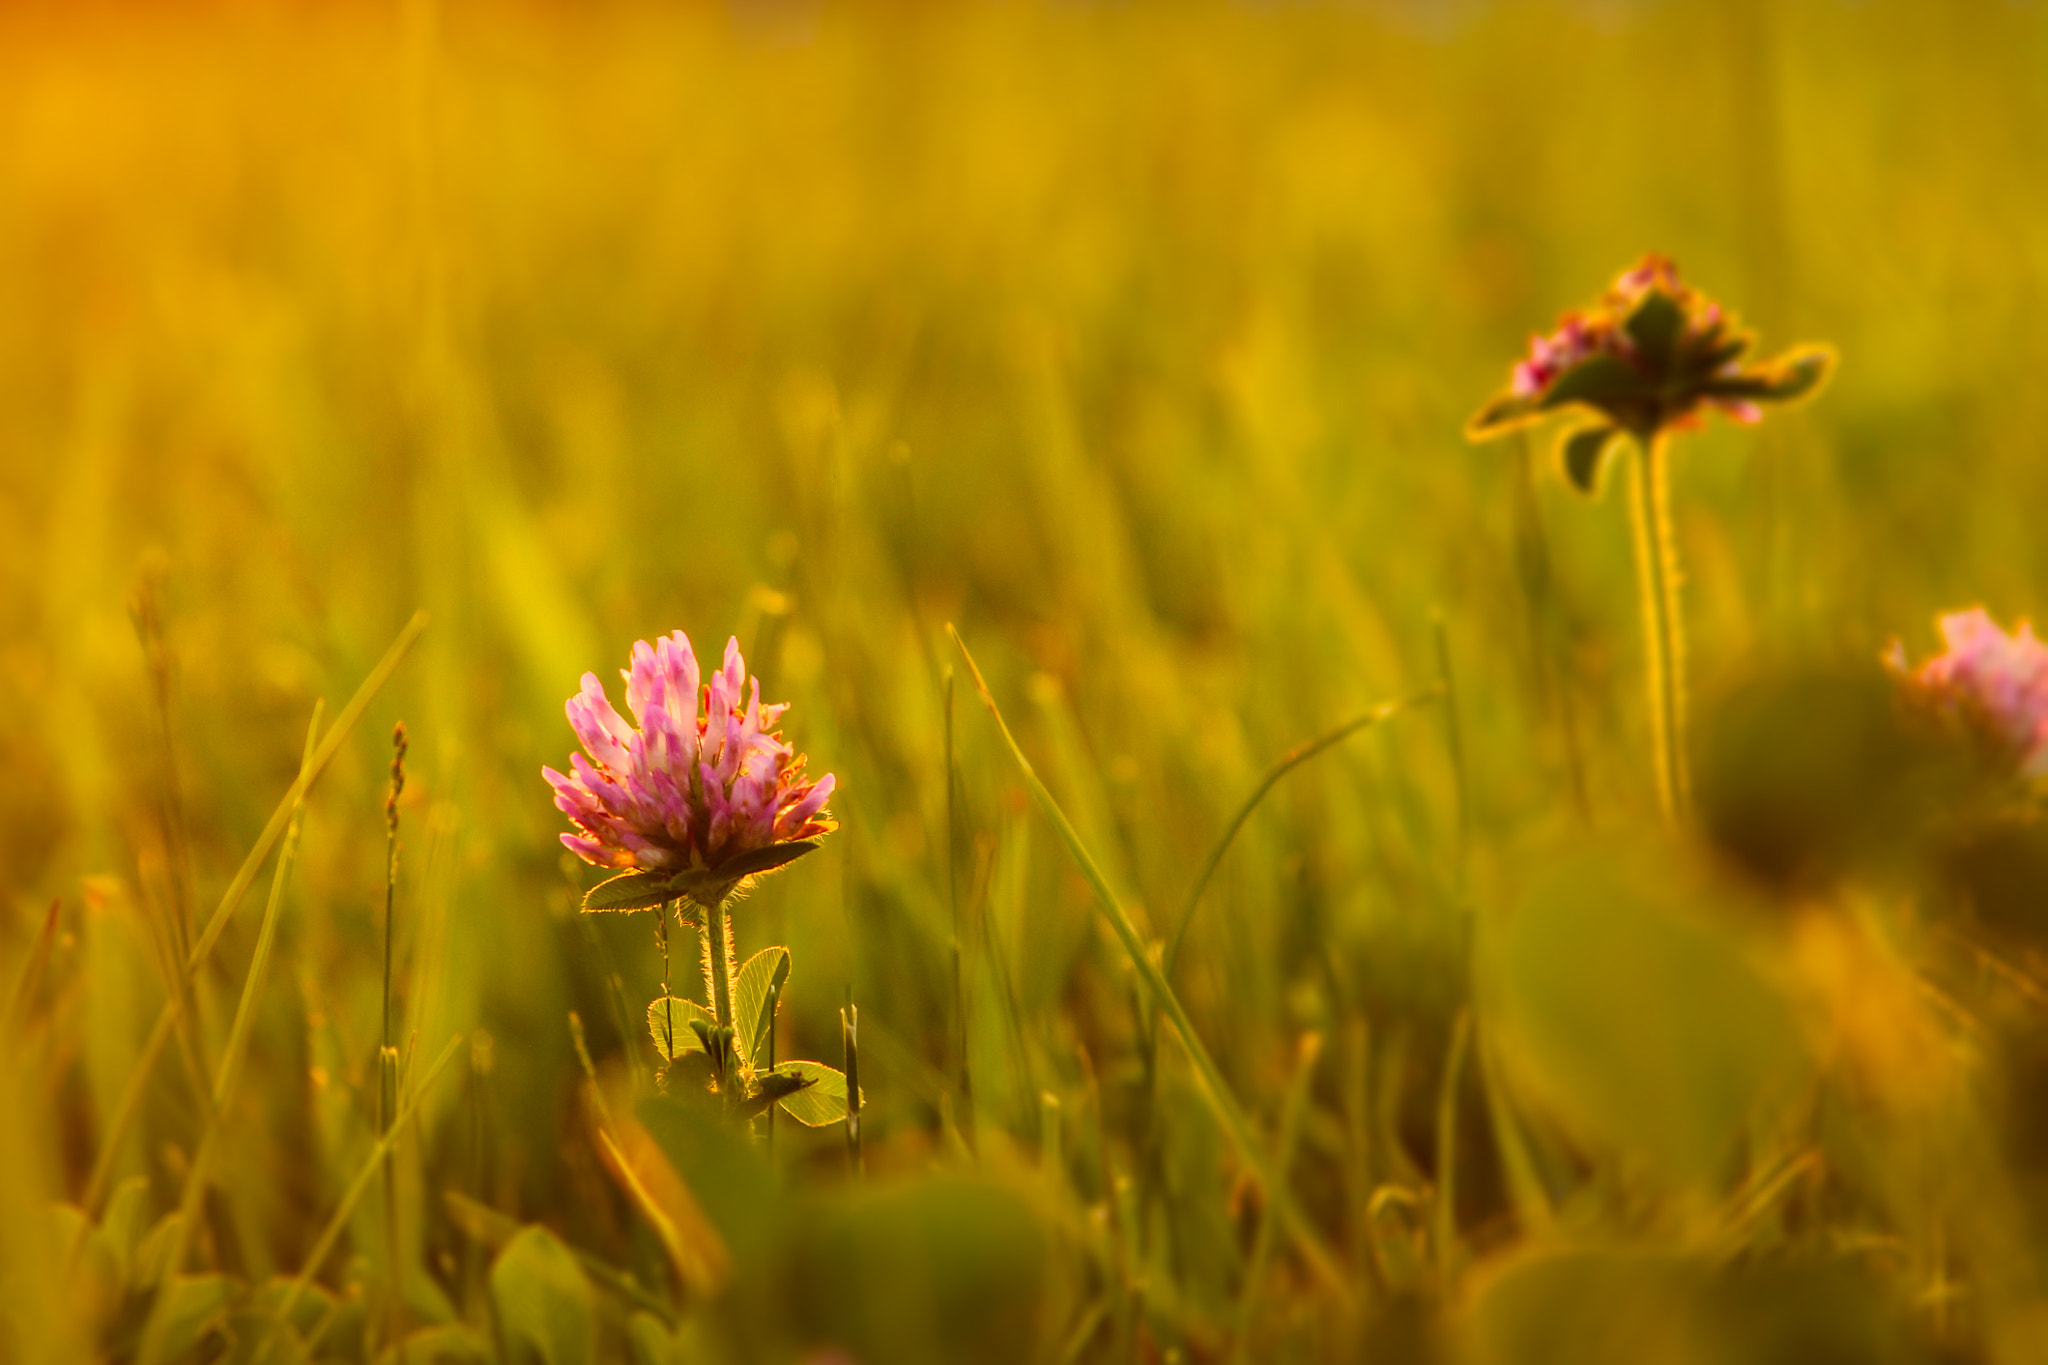 Photograph Clover In Evening Glow by Andy Operchuck on 500px